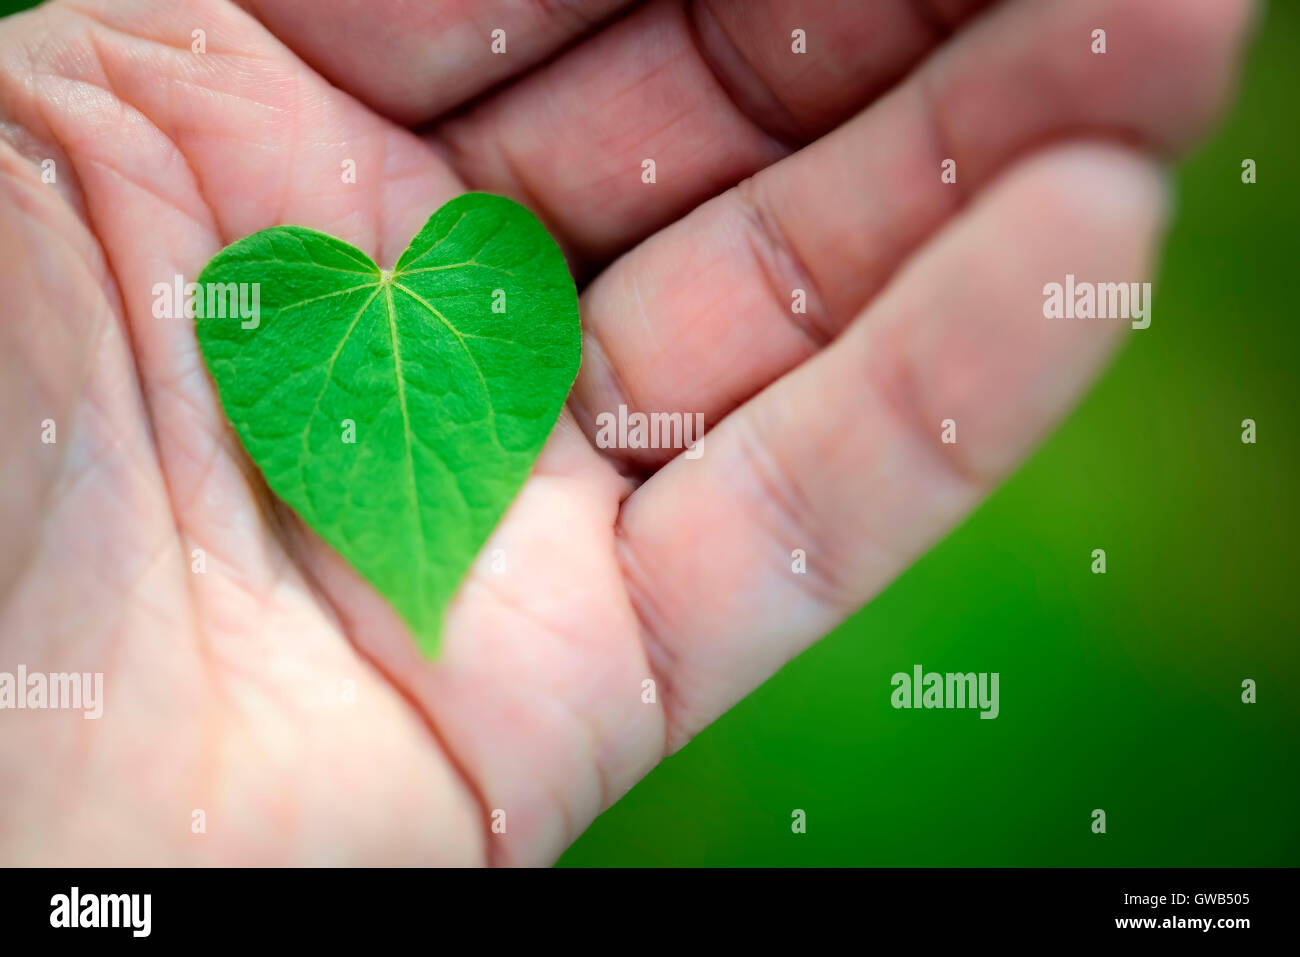 Heart-shaped sheet on a hand, Herzfoermiges Blatt auf einer Hand - Stock Image